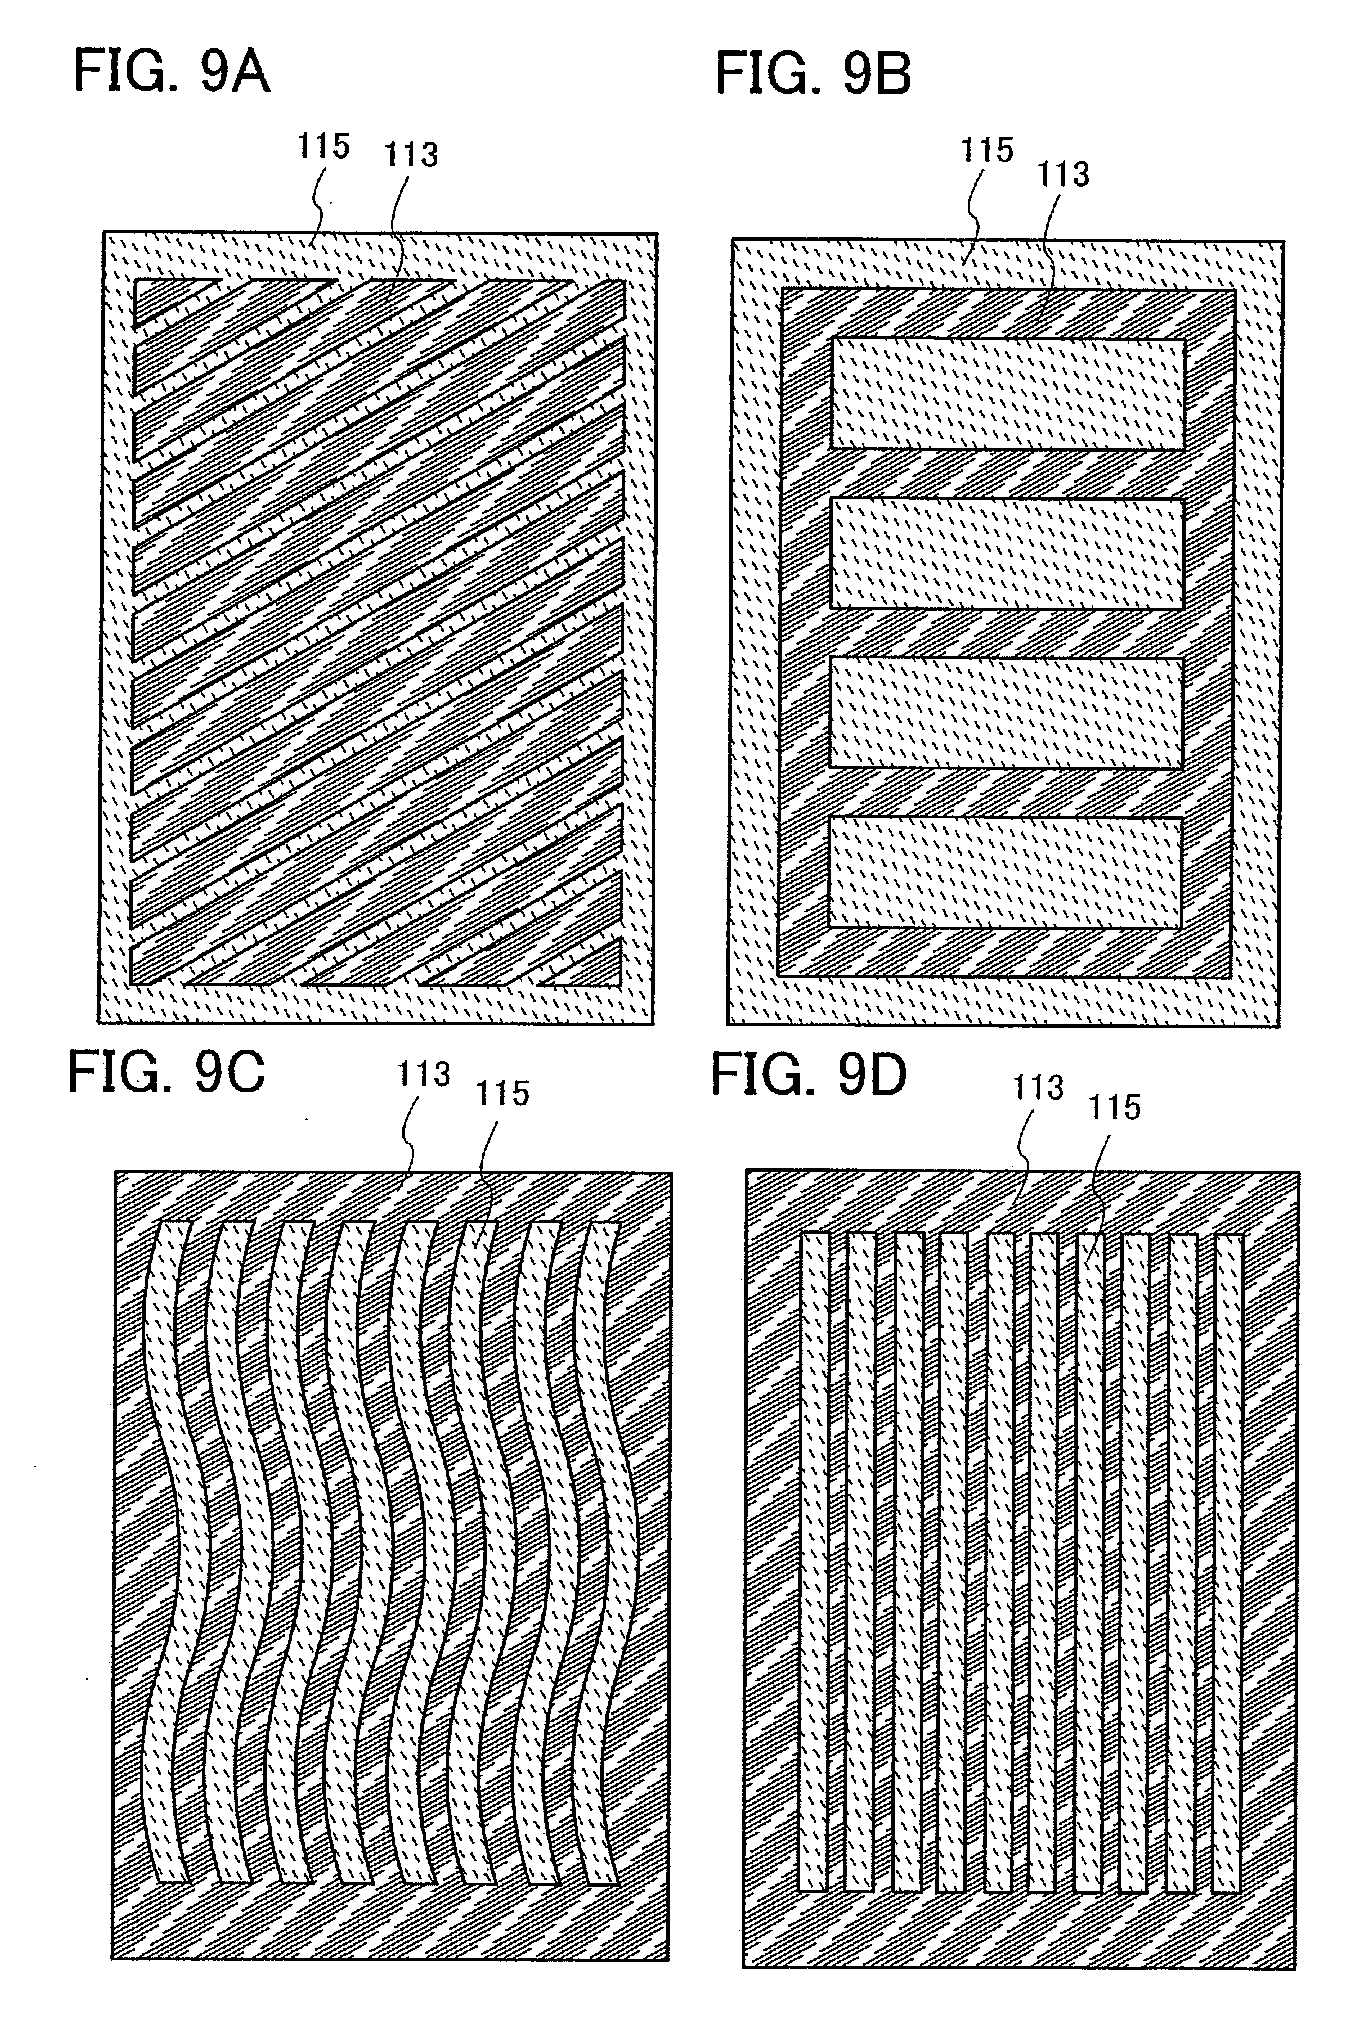 Patent Us20080136990 Liquid Crystal Display Device And Electronic Transmissive Film 8211 Working Drawing